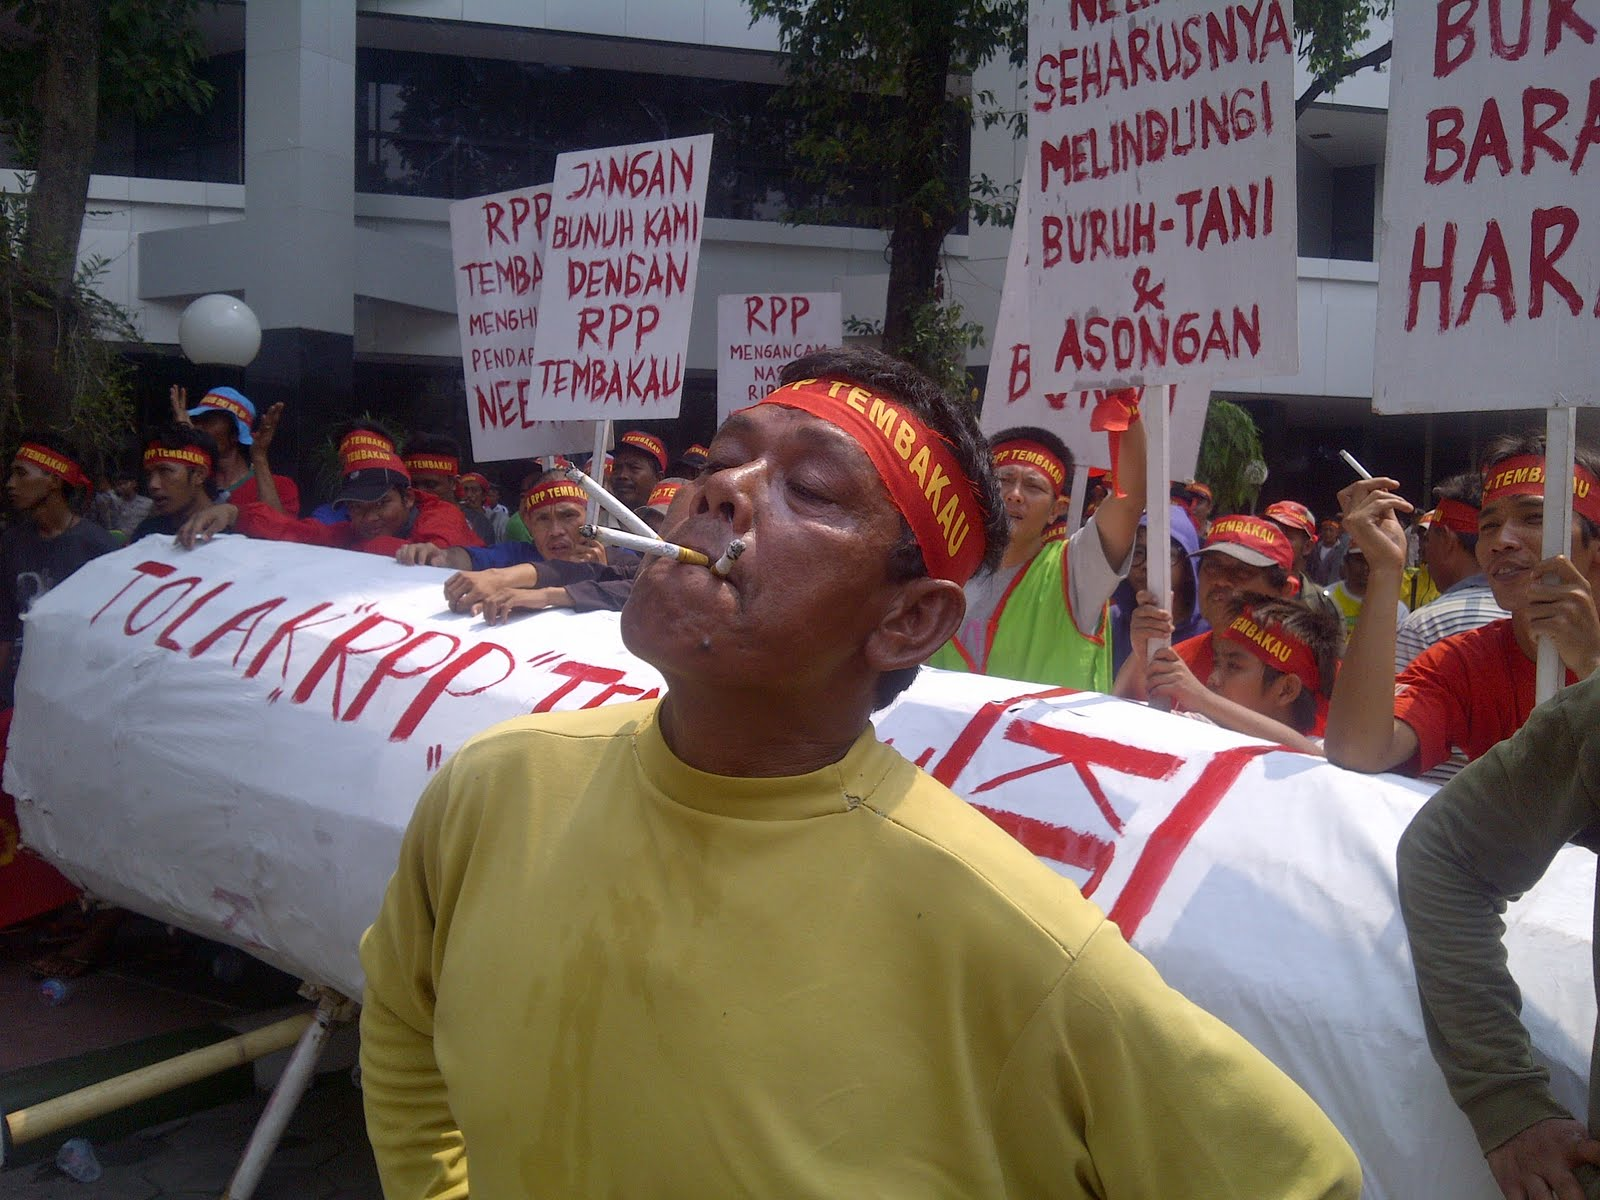 andreas harsono public health suffers as ignores calls n cigarette vendors at a recent rally in jakarta protesting government talks over a tobacco control law thousands of vendors were organized and